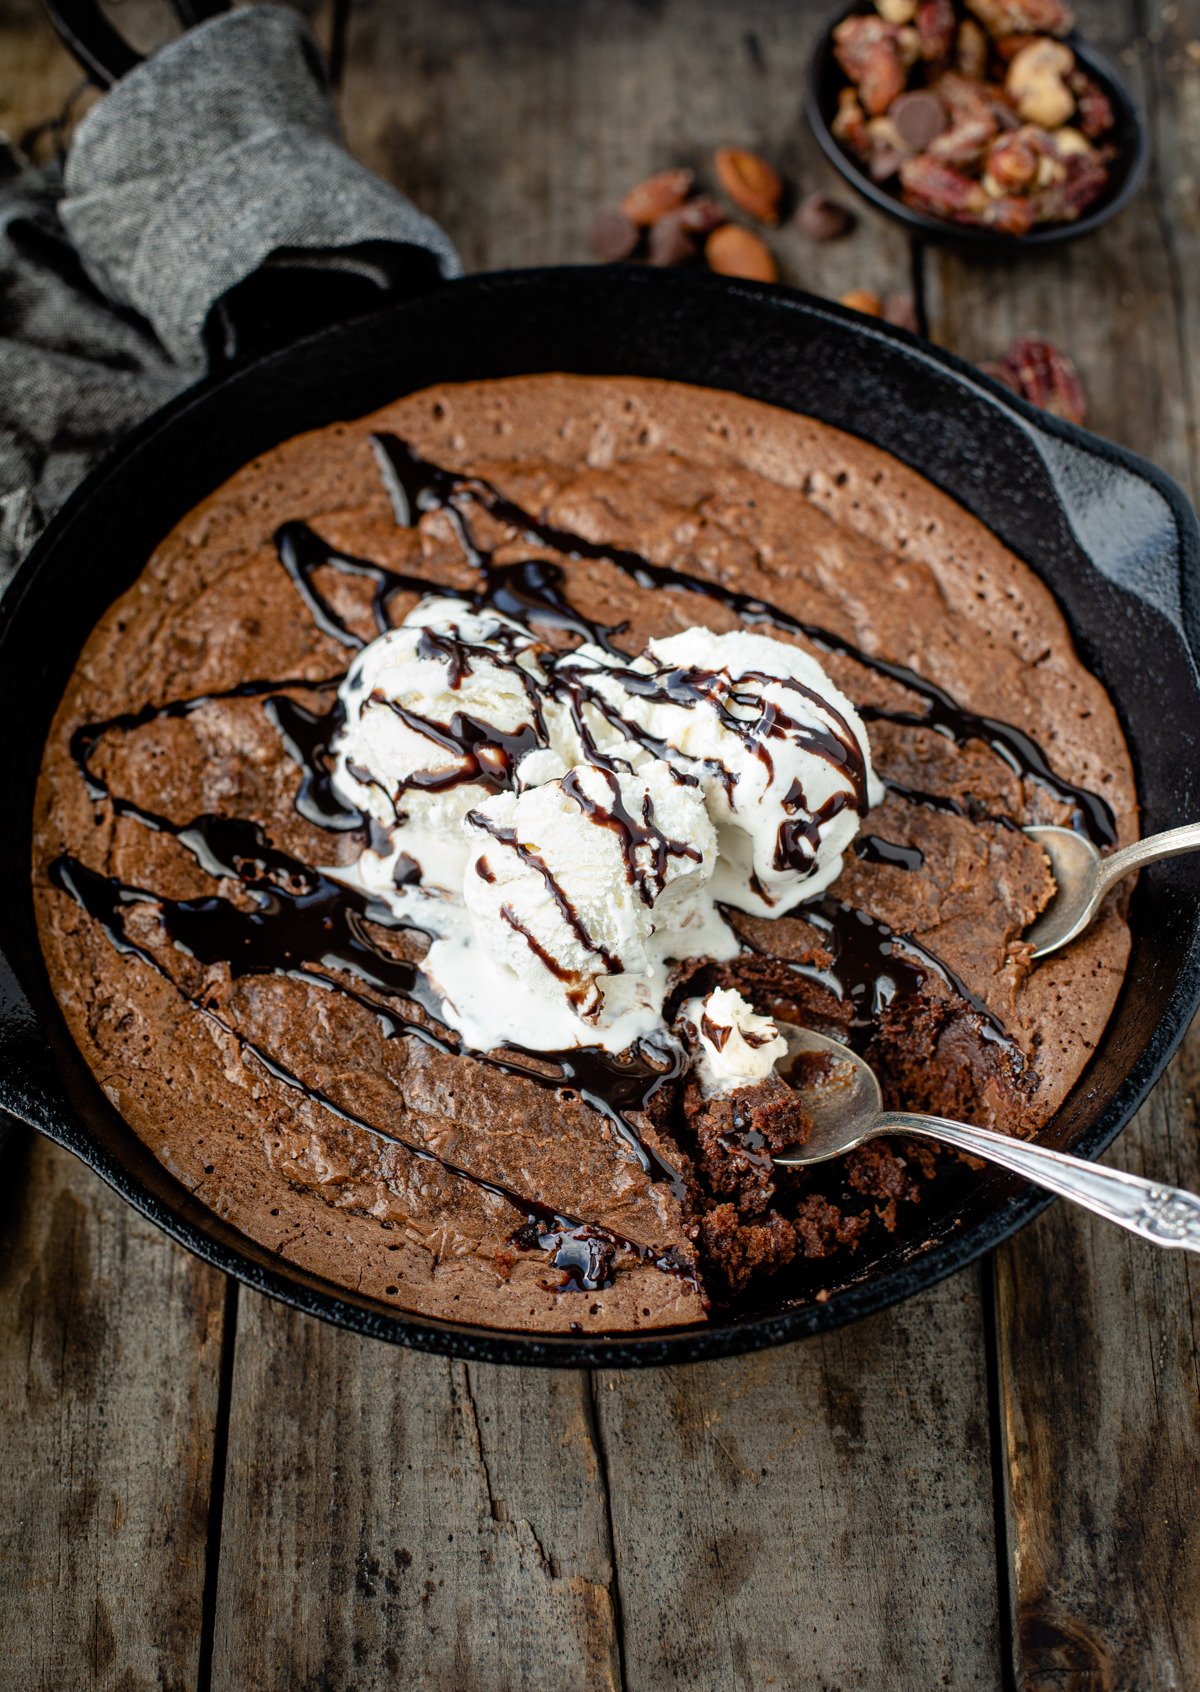 Skillet brownies with ice cream and a chocolate sauce drizzle for dessert comfort food.